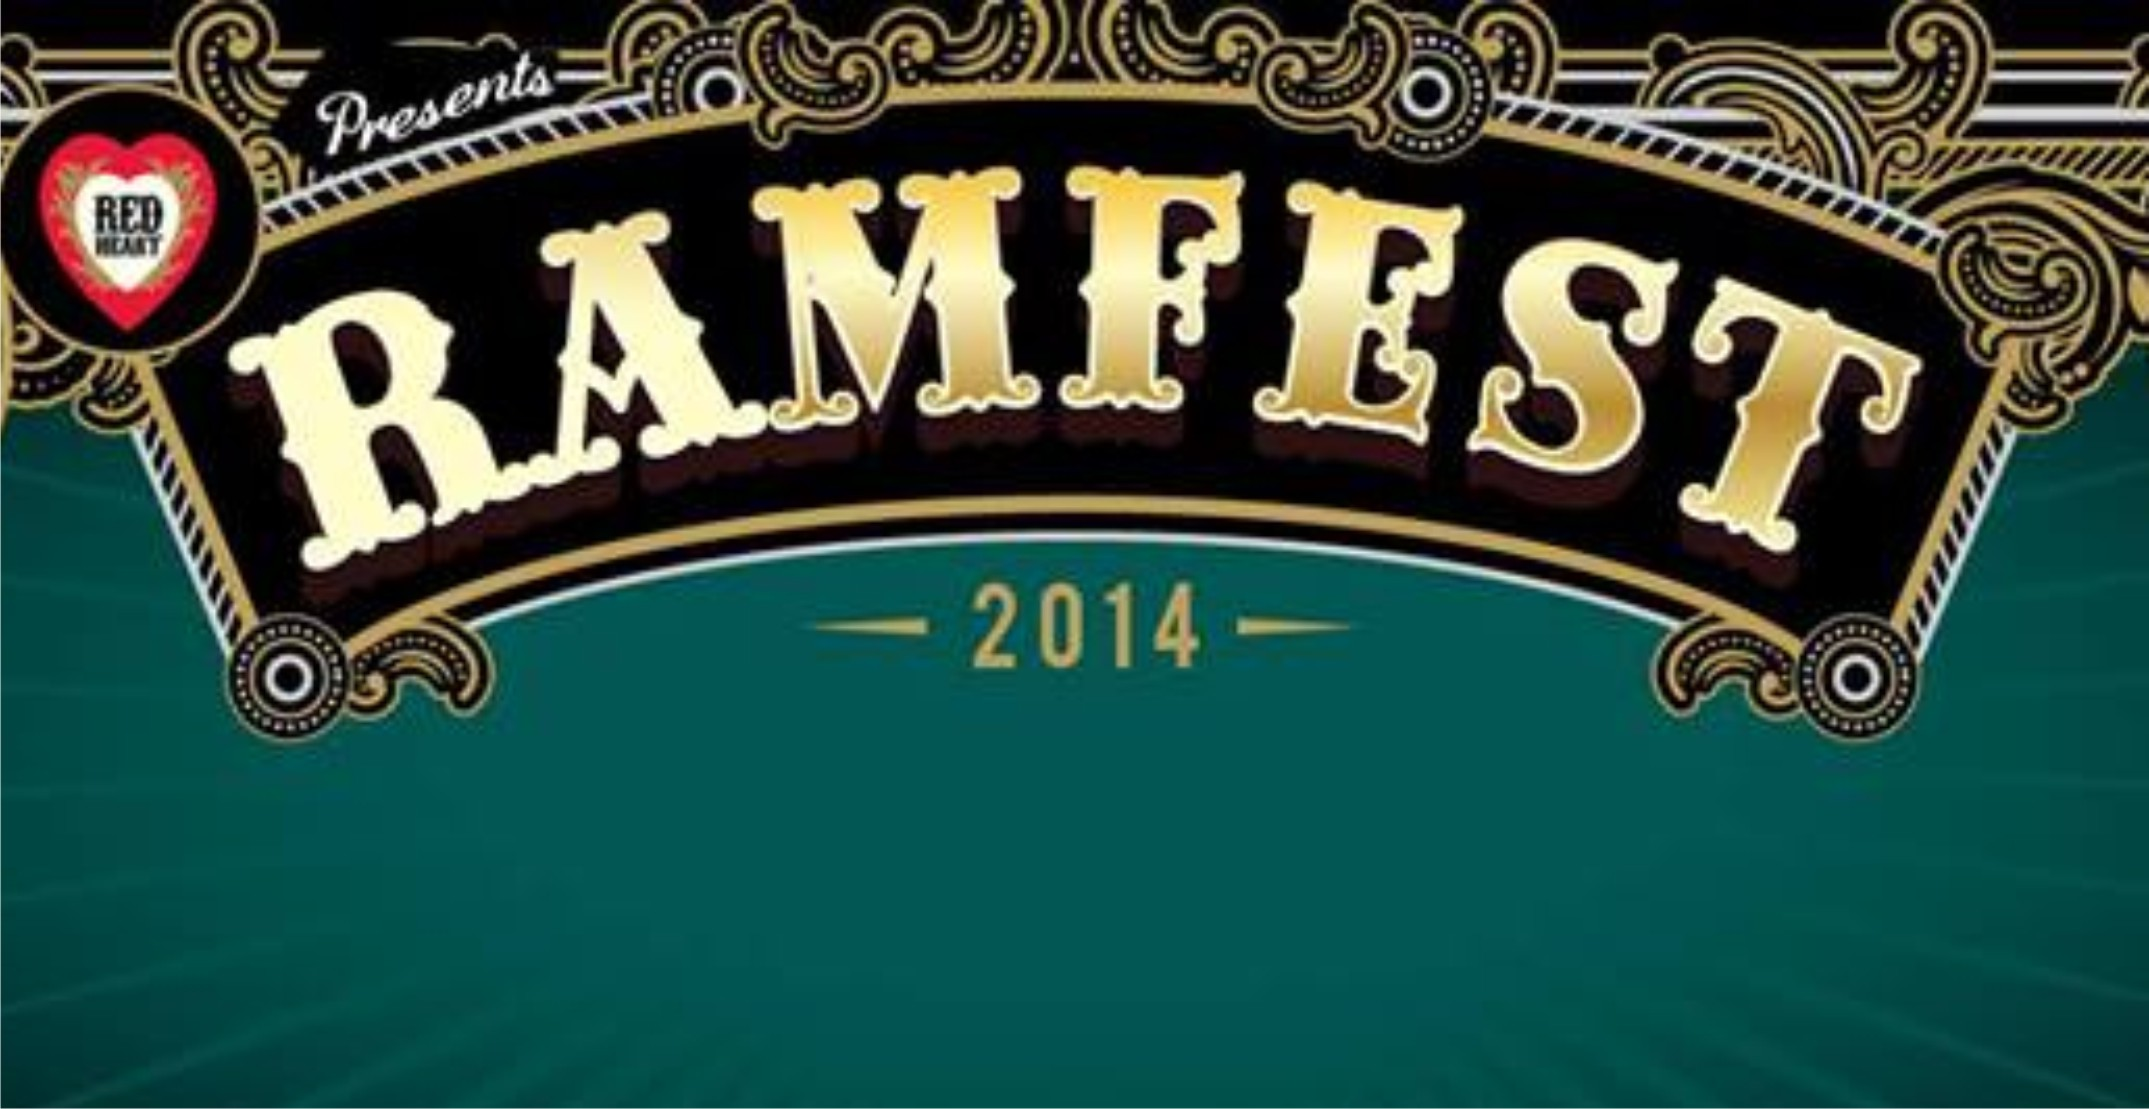 Ramfest 2014 Competition